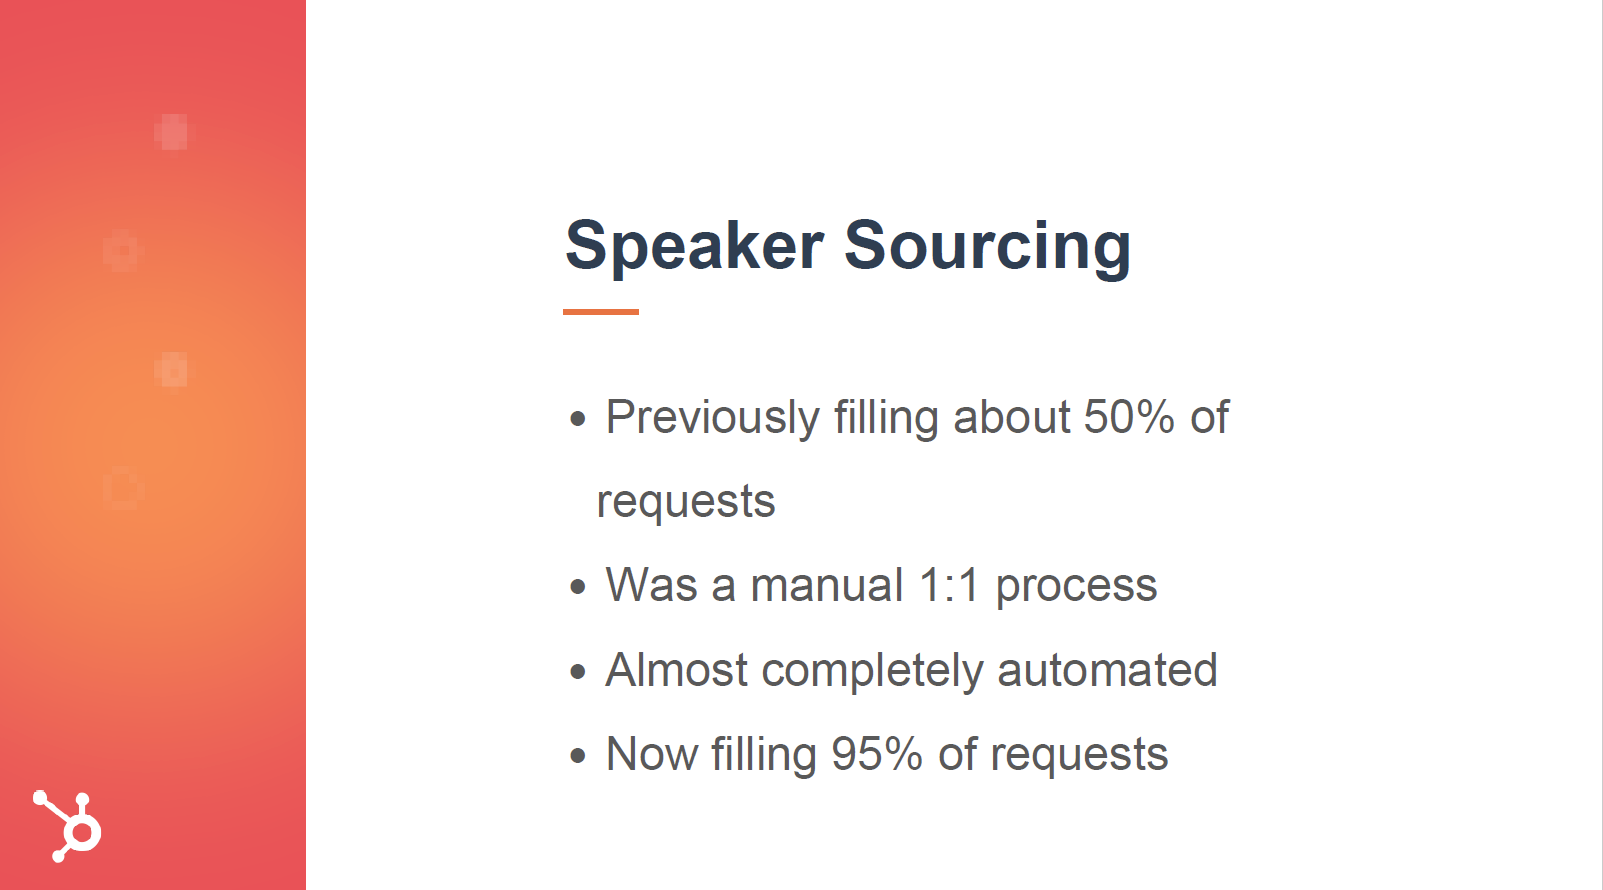 Event speaker sourcing